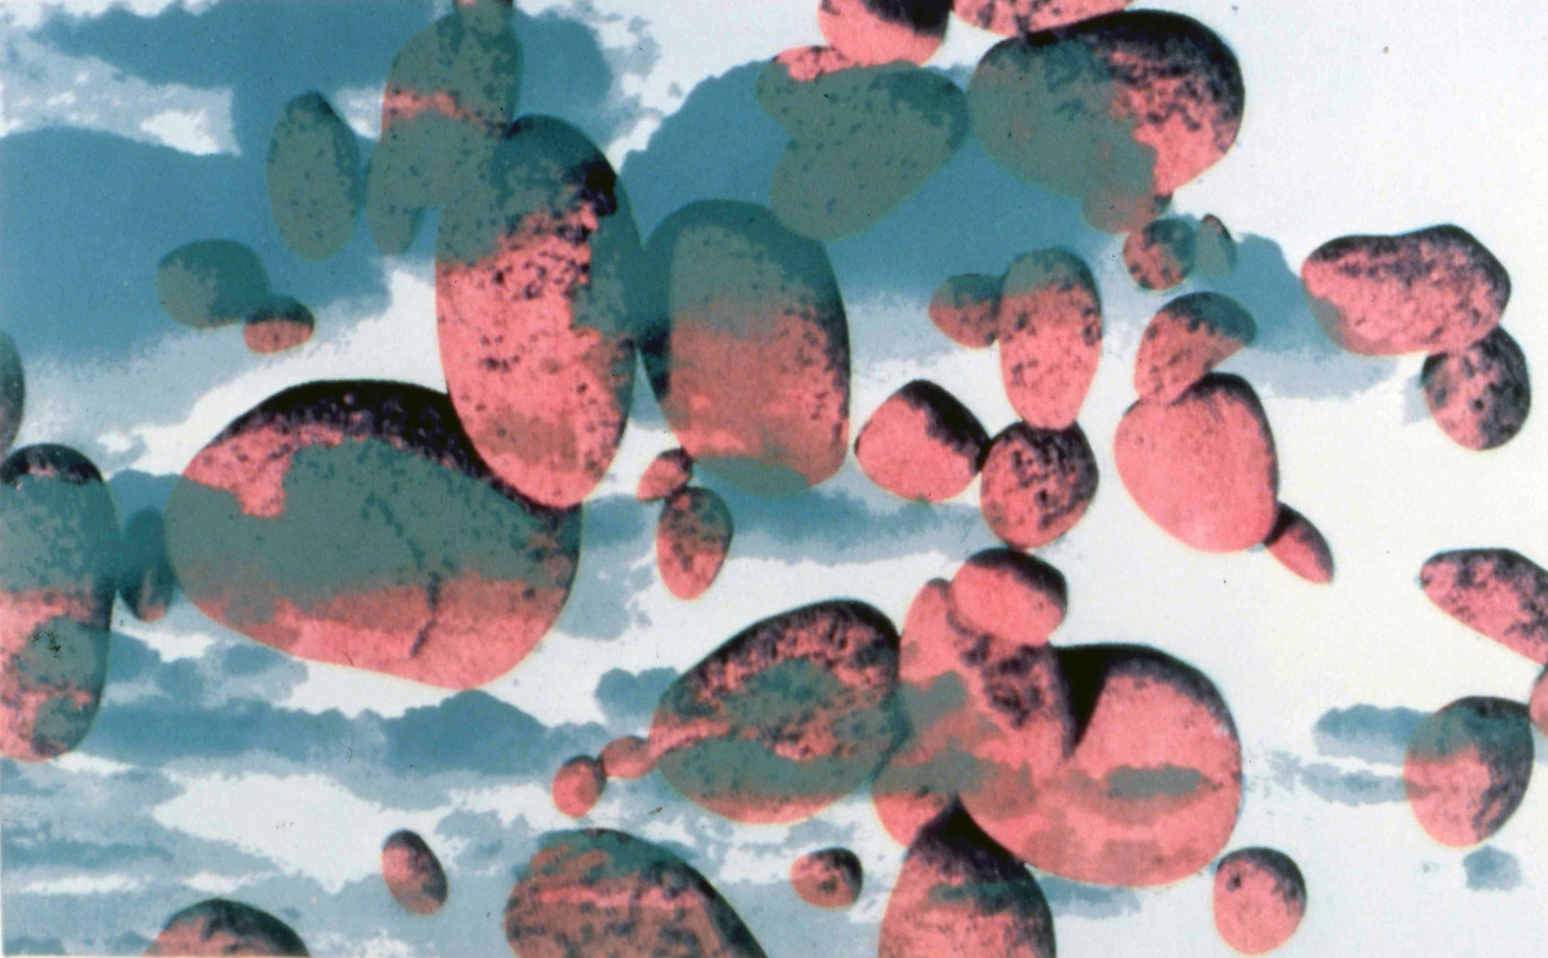 Rock and Clouds Series #2, 1978, screen print on photo, 8 x 10""